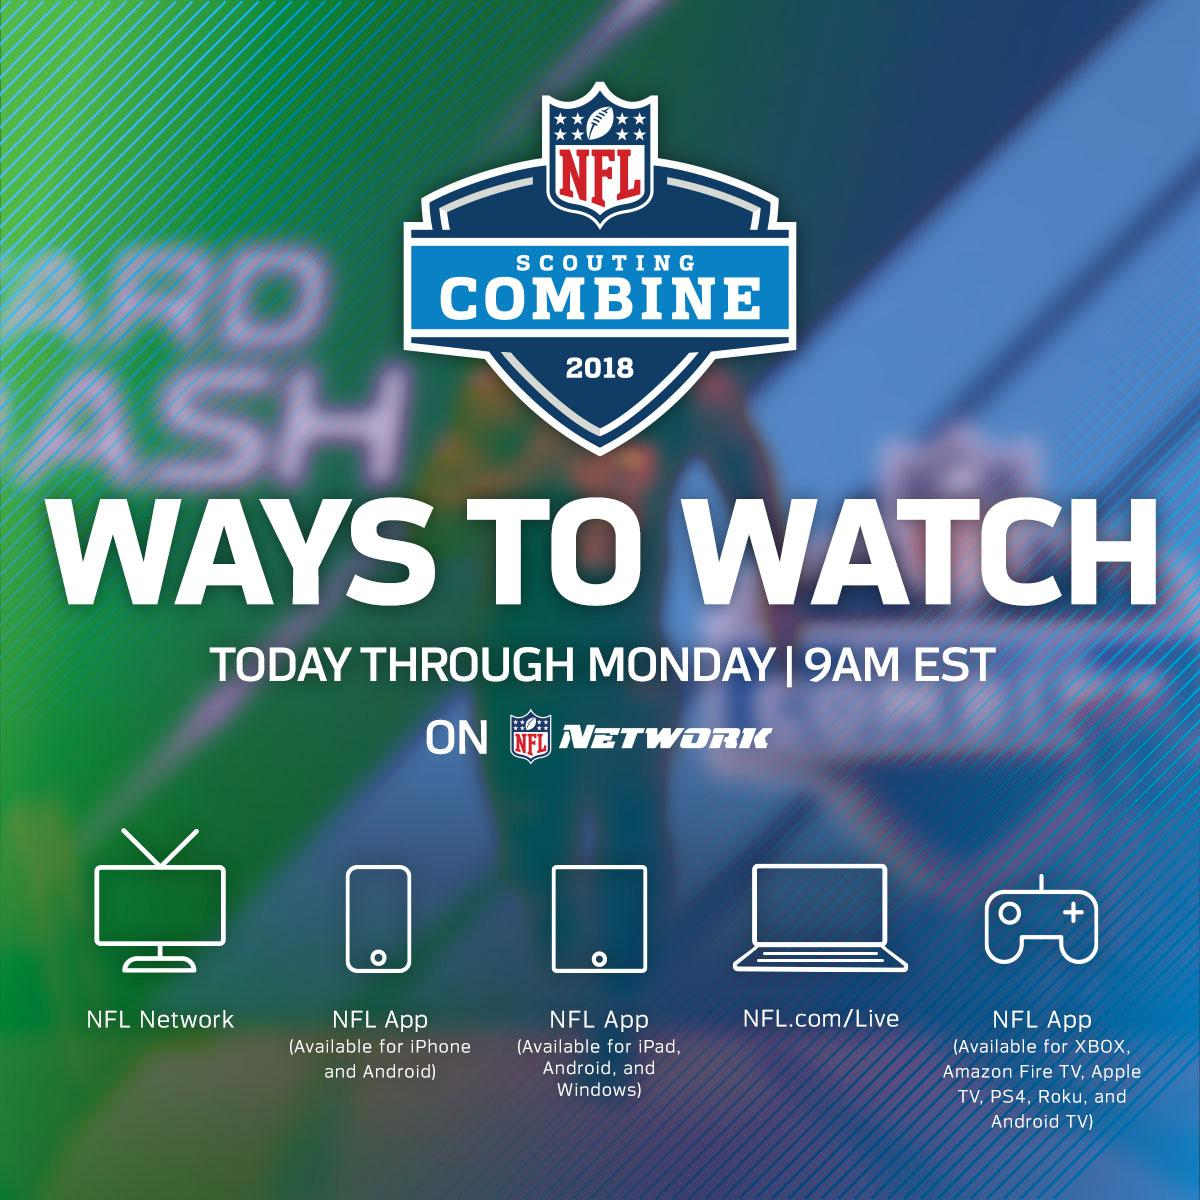 Day 1 of the #NFLCombine starts NOW!  Here's how you can watch: https://t.co/n835JZMk2h https://t.co/CHy9JSn4OZ